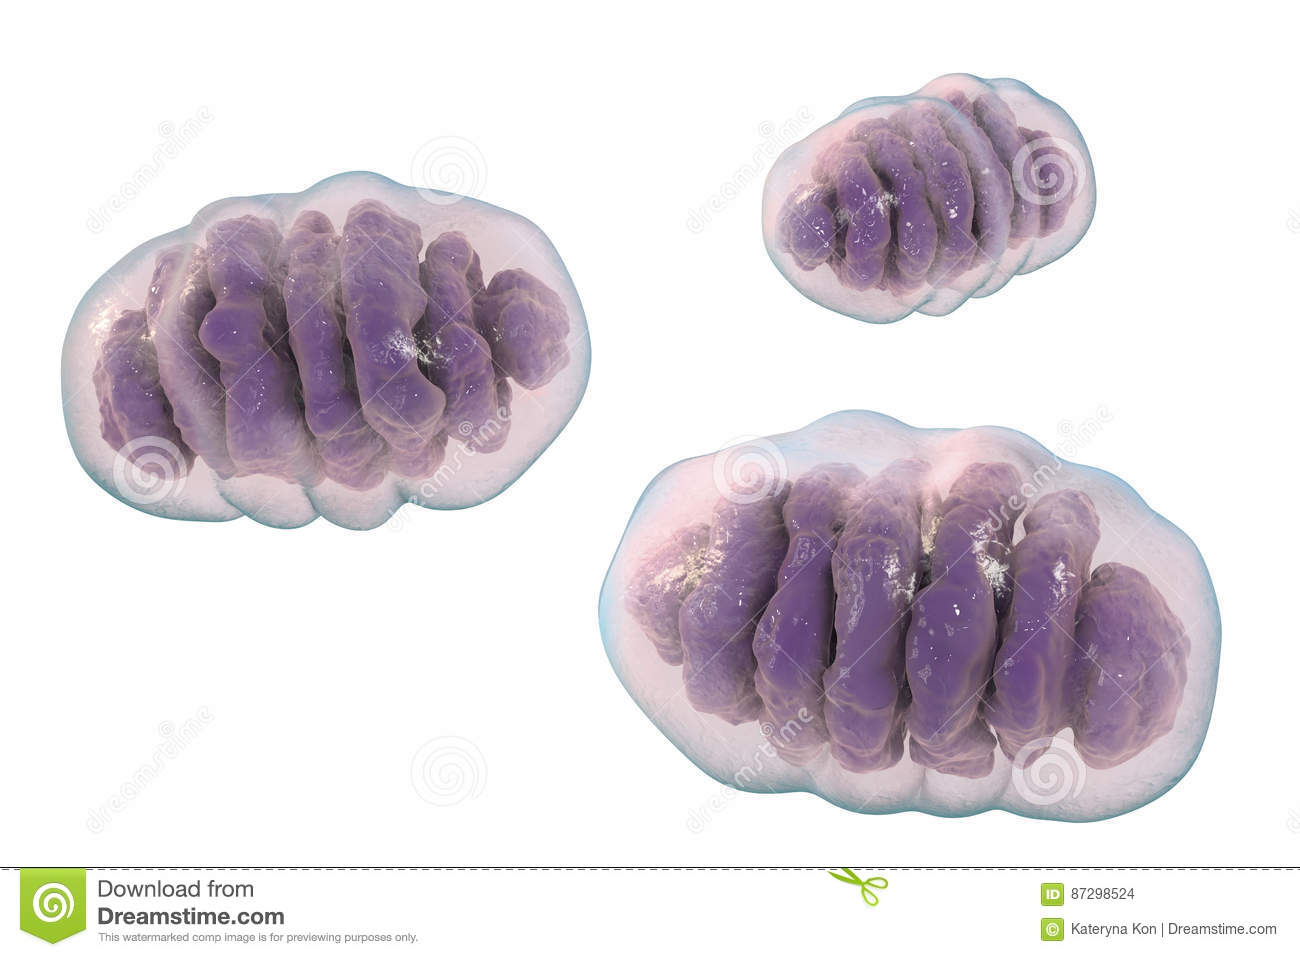 Mitochondrion, cellular ogranelles which produce energy